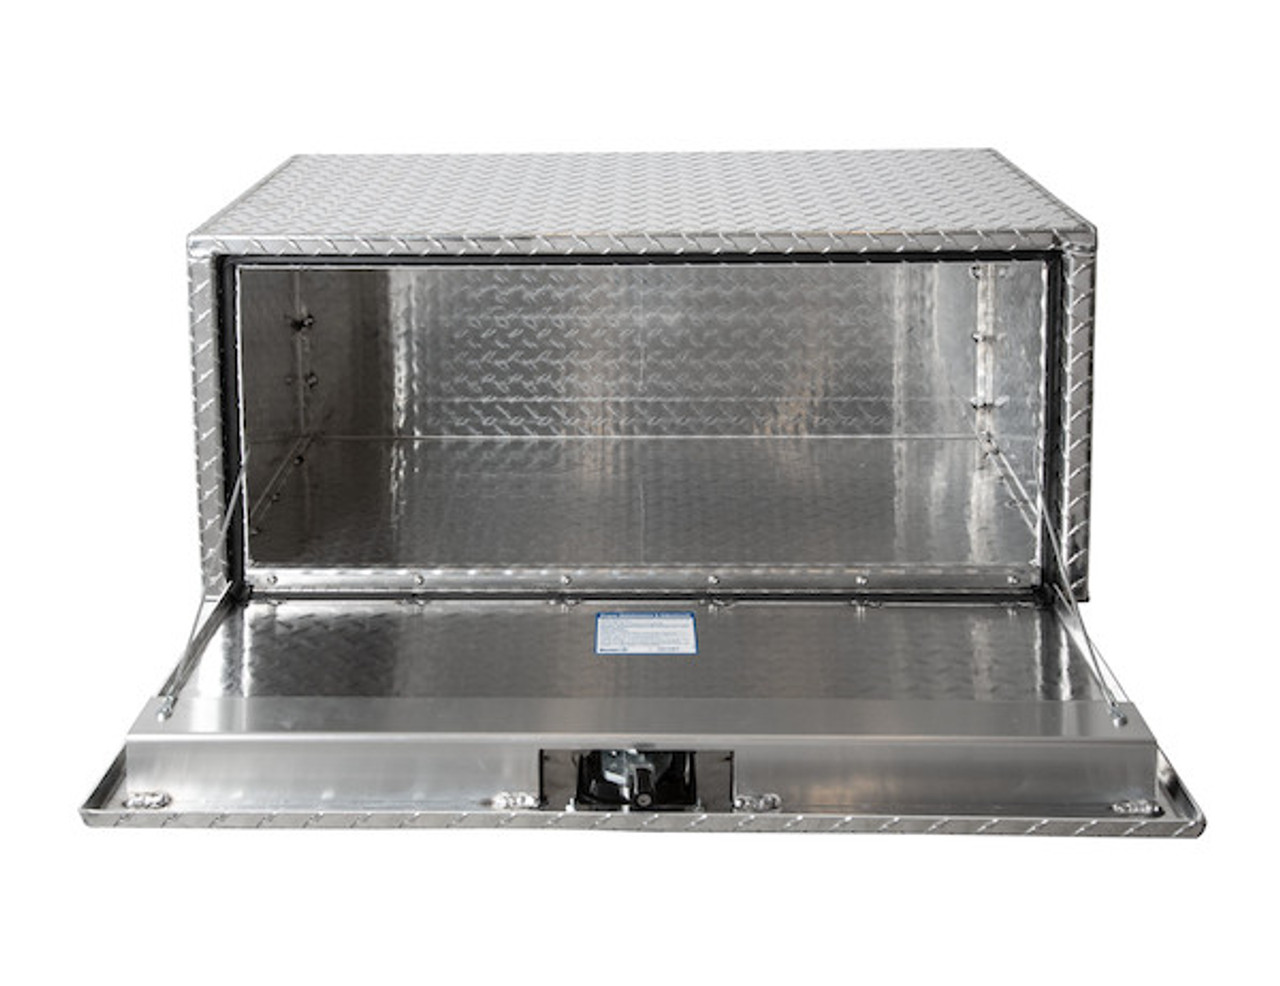 "1705135 BUYERS PRODUCTS DIAMOND TREAD ALUMINUM UNDERBODY TRUCK TOOLBOX 24""HX24""DX36""W"